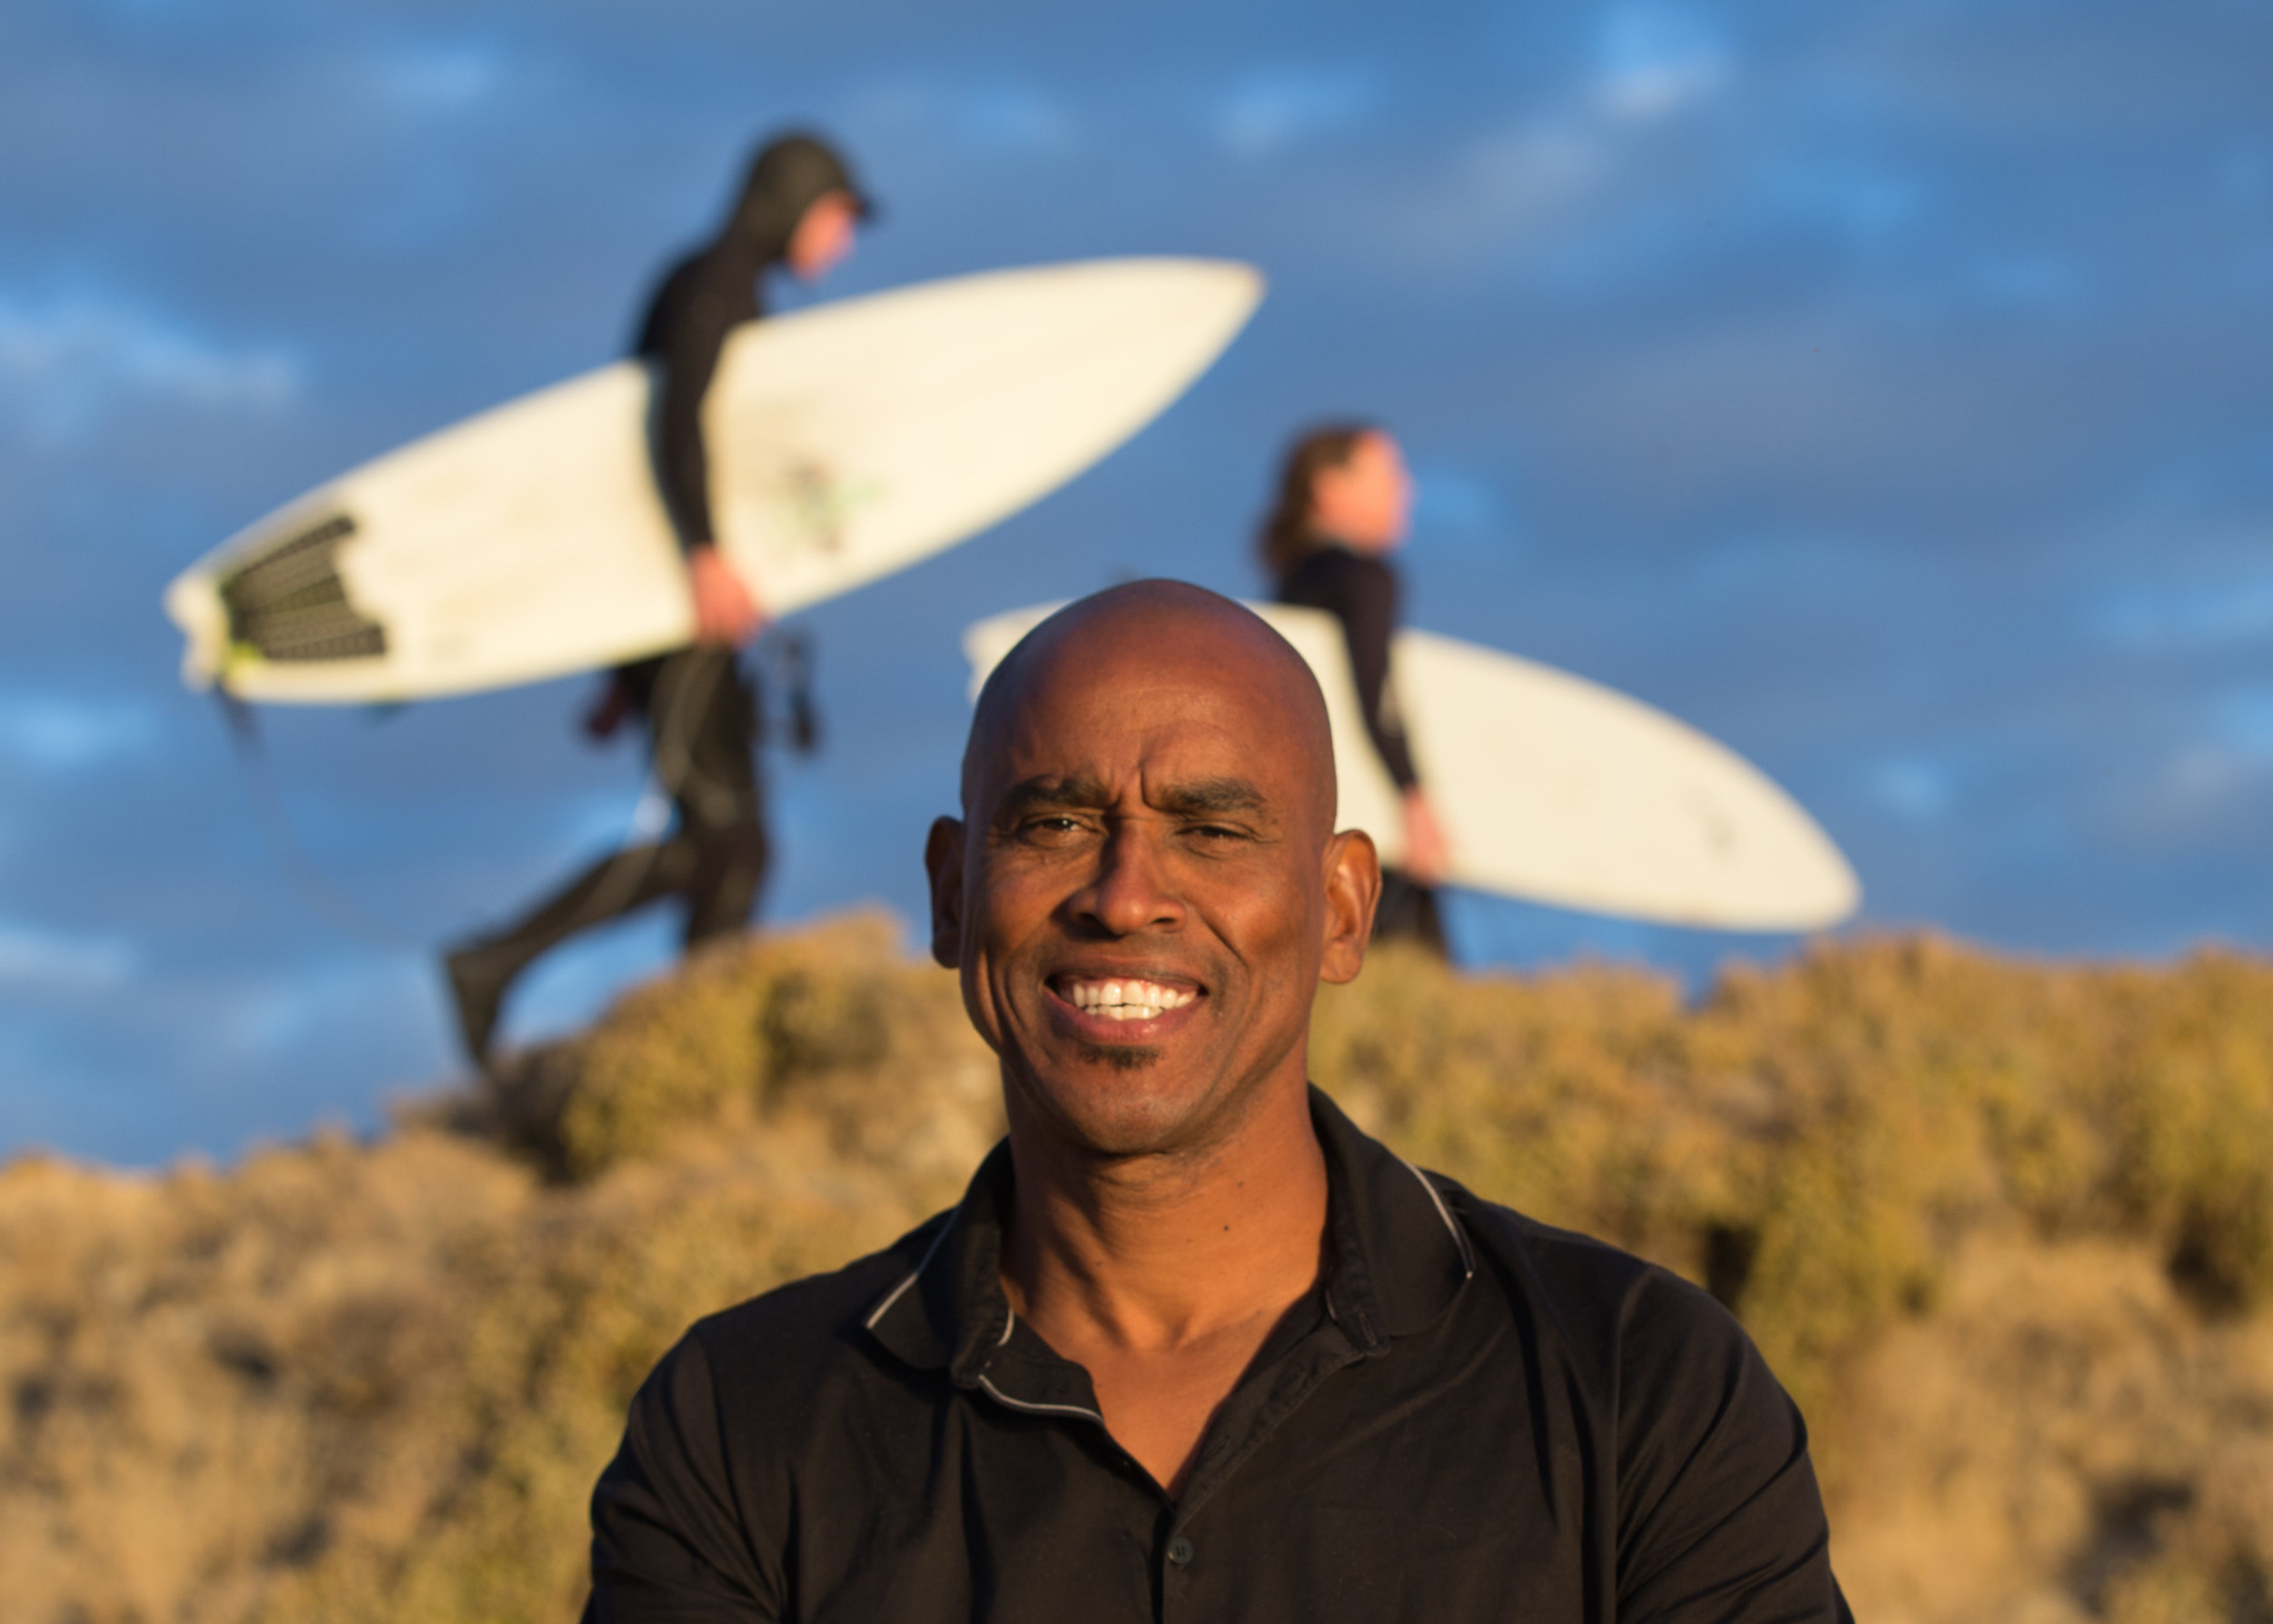 Growing up in Watsonville, Gary started surfing at the age of 14 out at Sunset and Manresa beaches. He's surfed all over the world, including Africa,Hawaii, Mexico and Central America.